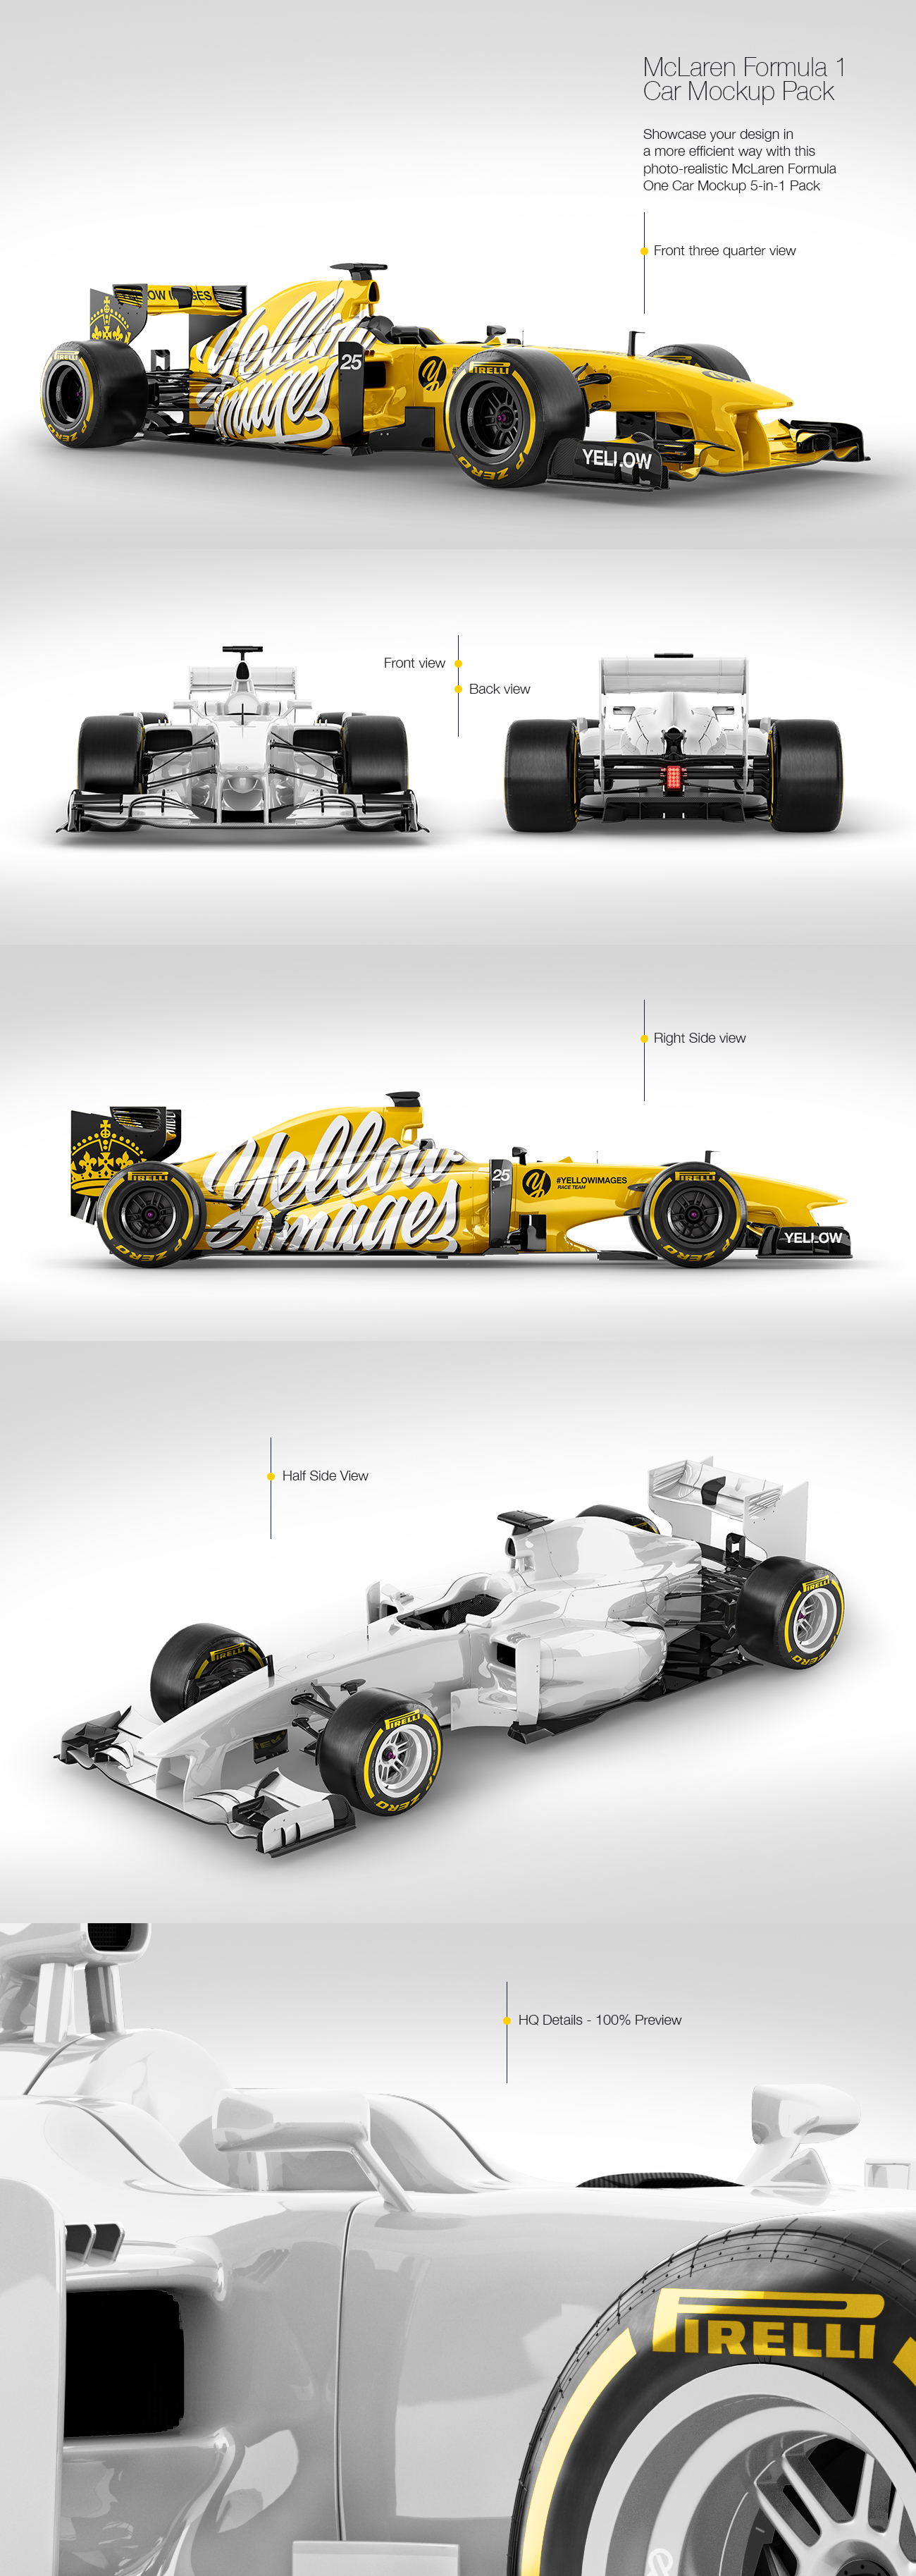 Download Mclaren Formula 1 Mockup Pack In Handpicked Sets Of Vehicles On Yellow Images Creative Store PSD Mockup Templates